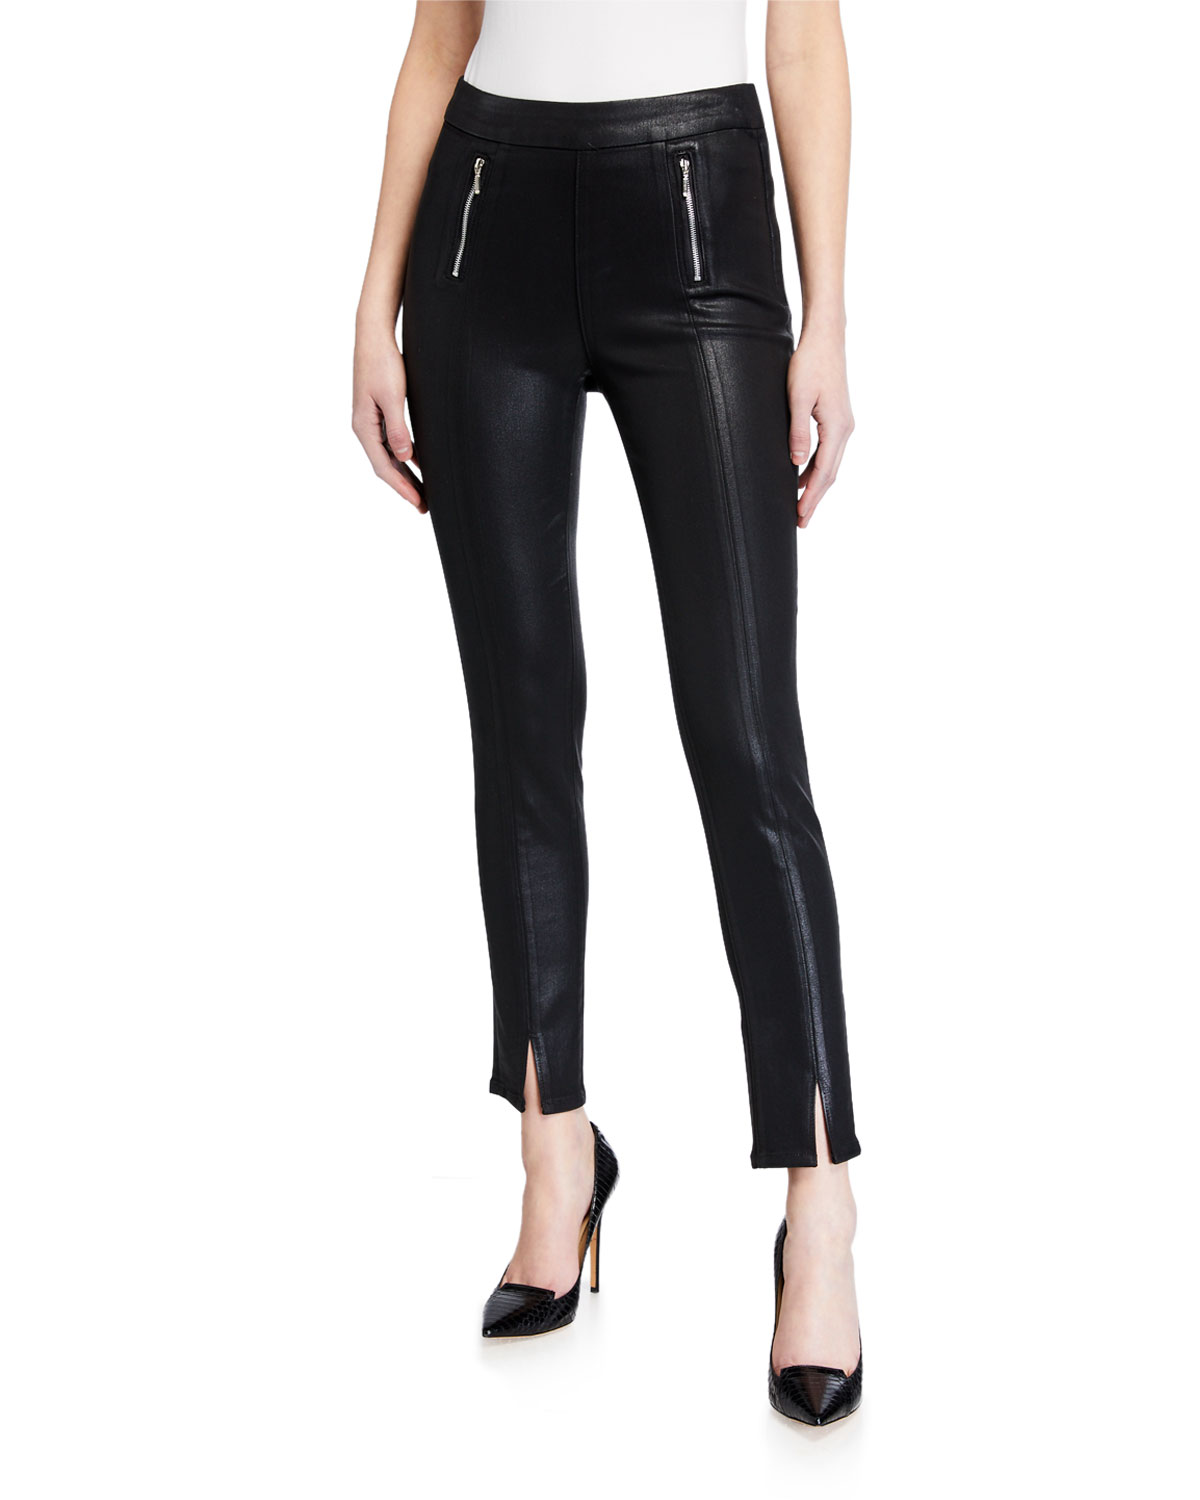 PAIGE Talita Coated Pants in Black